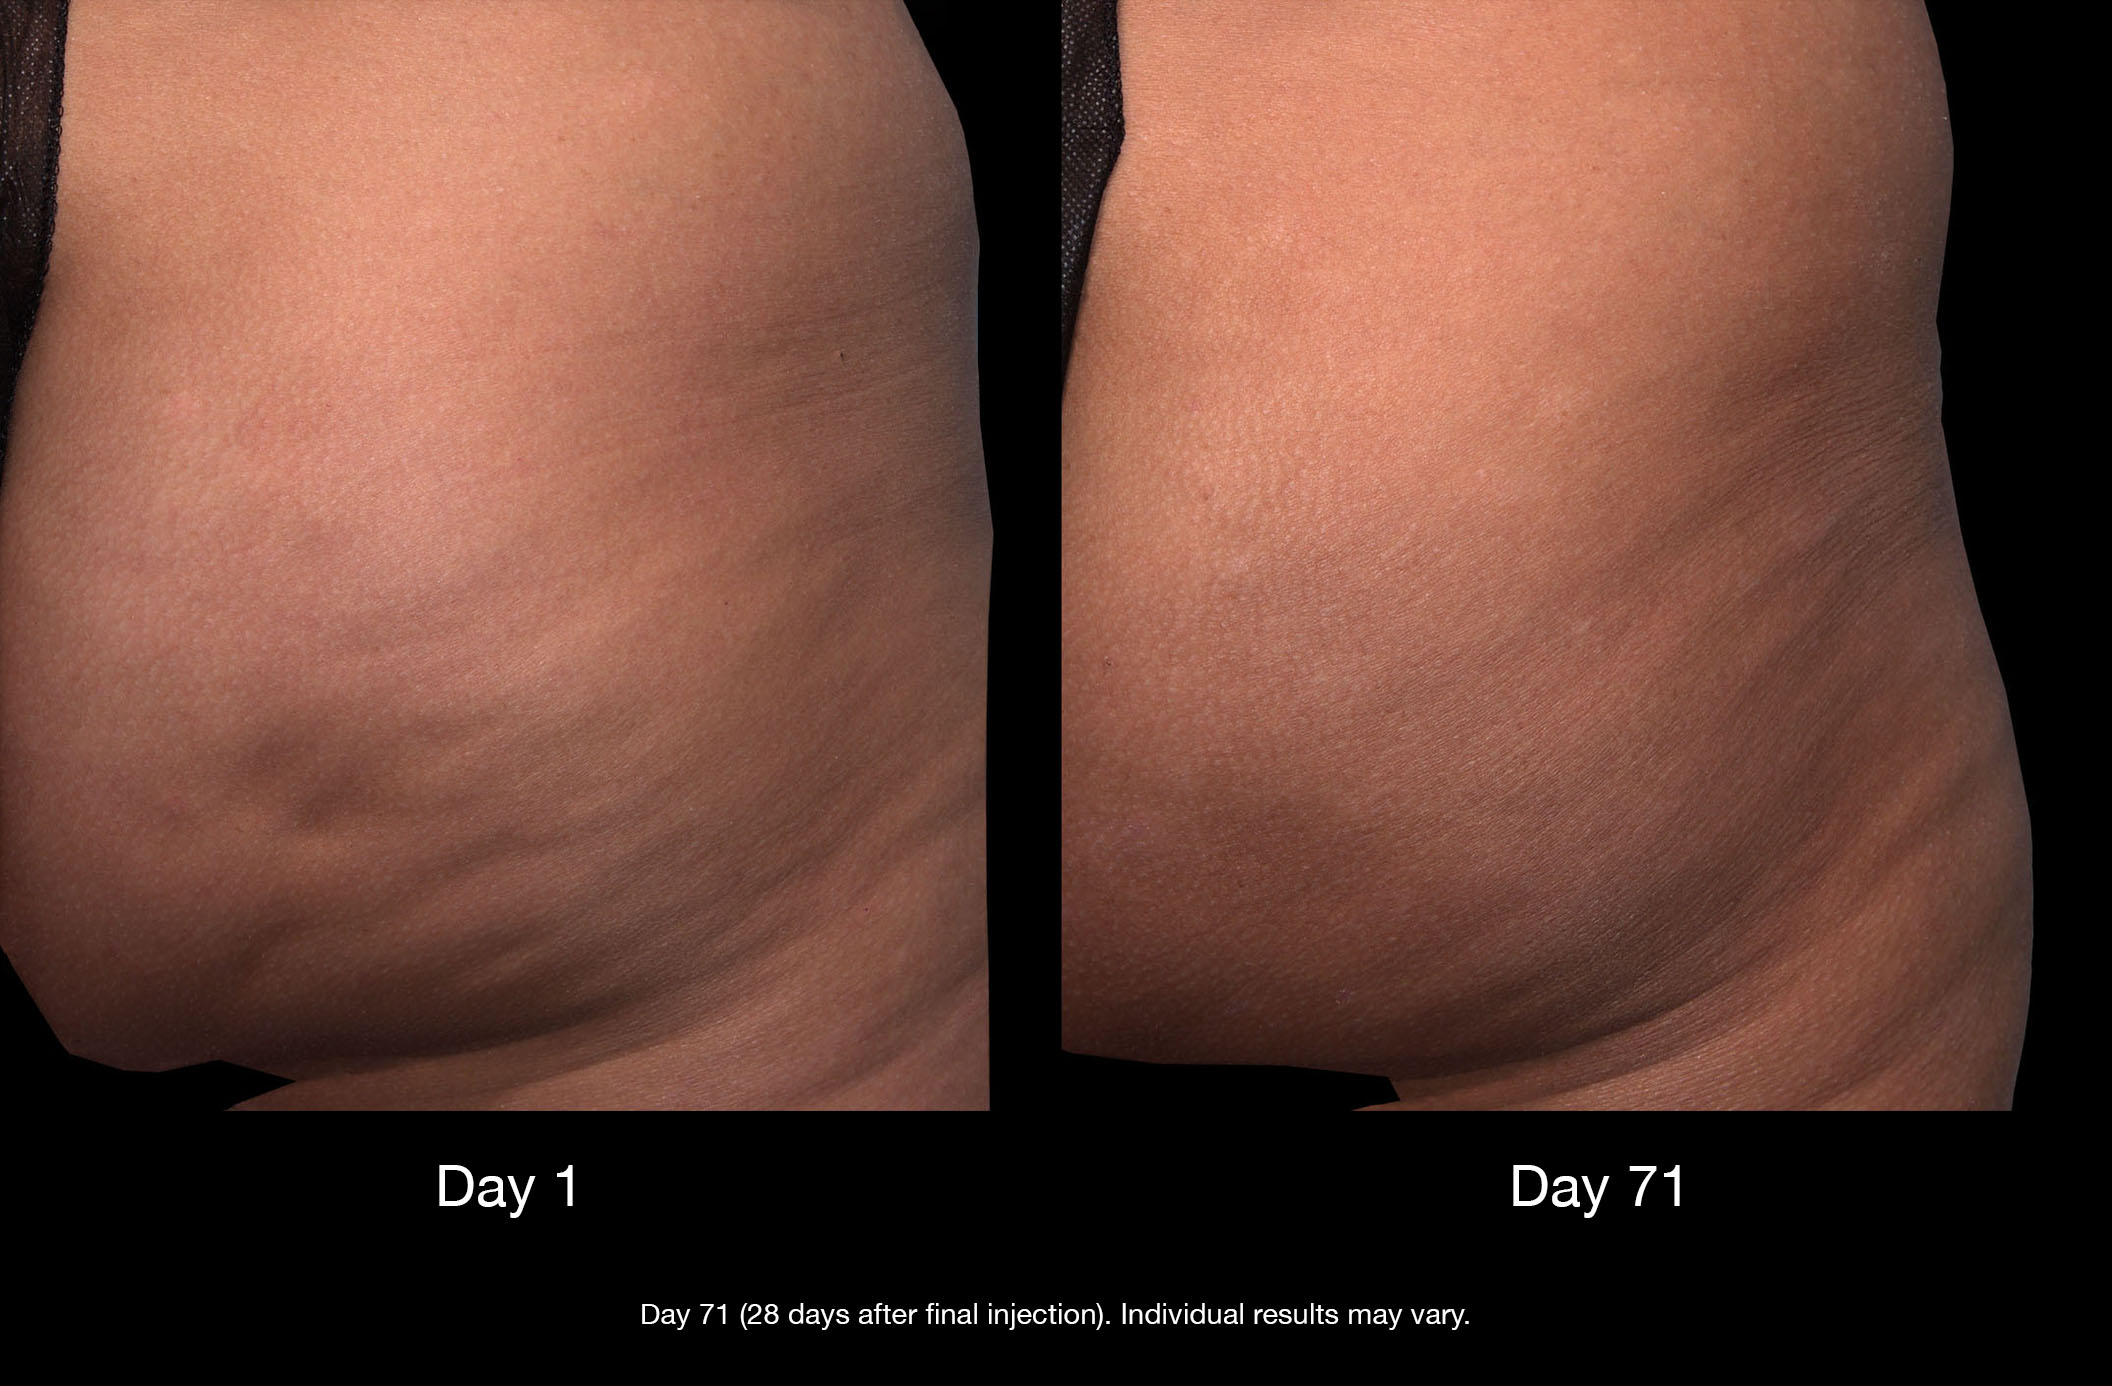 Qwo injections for body contouring in NYC, NY